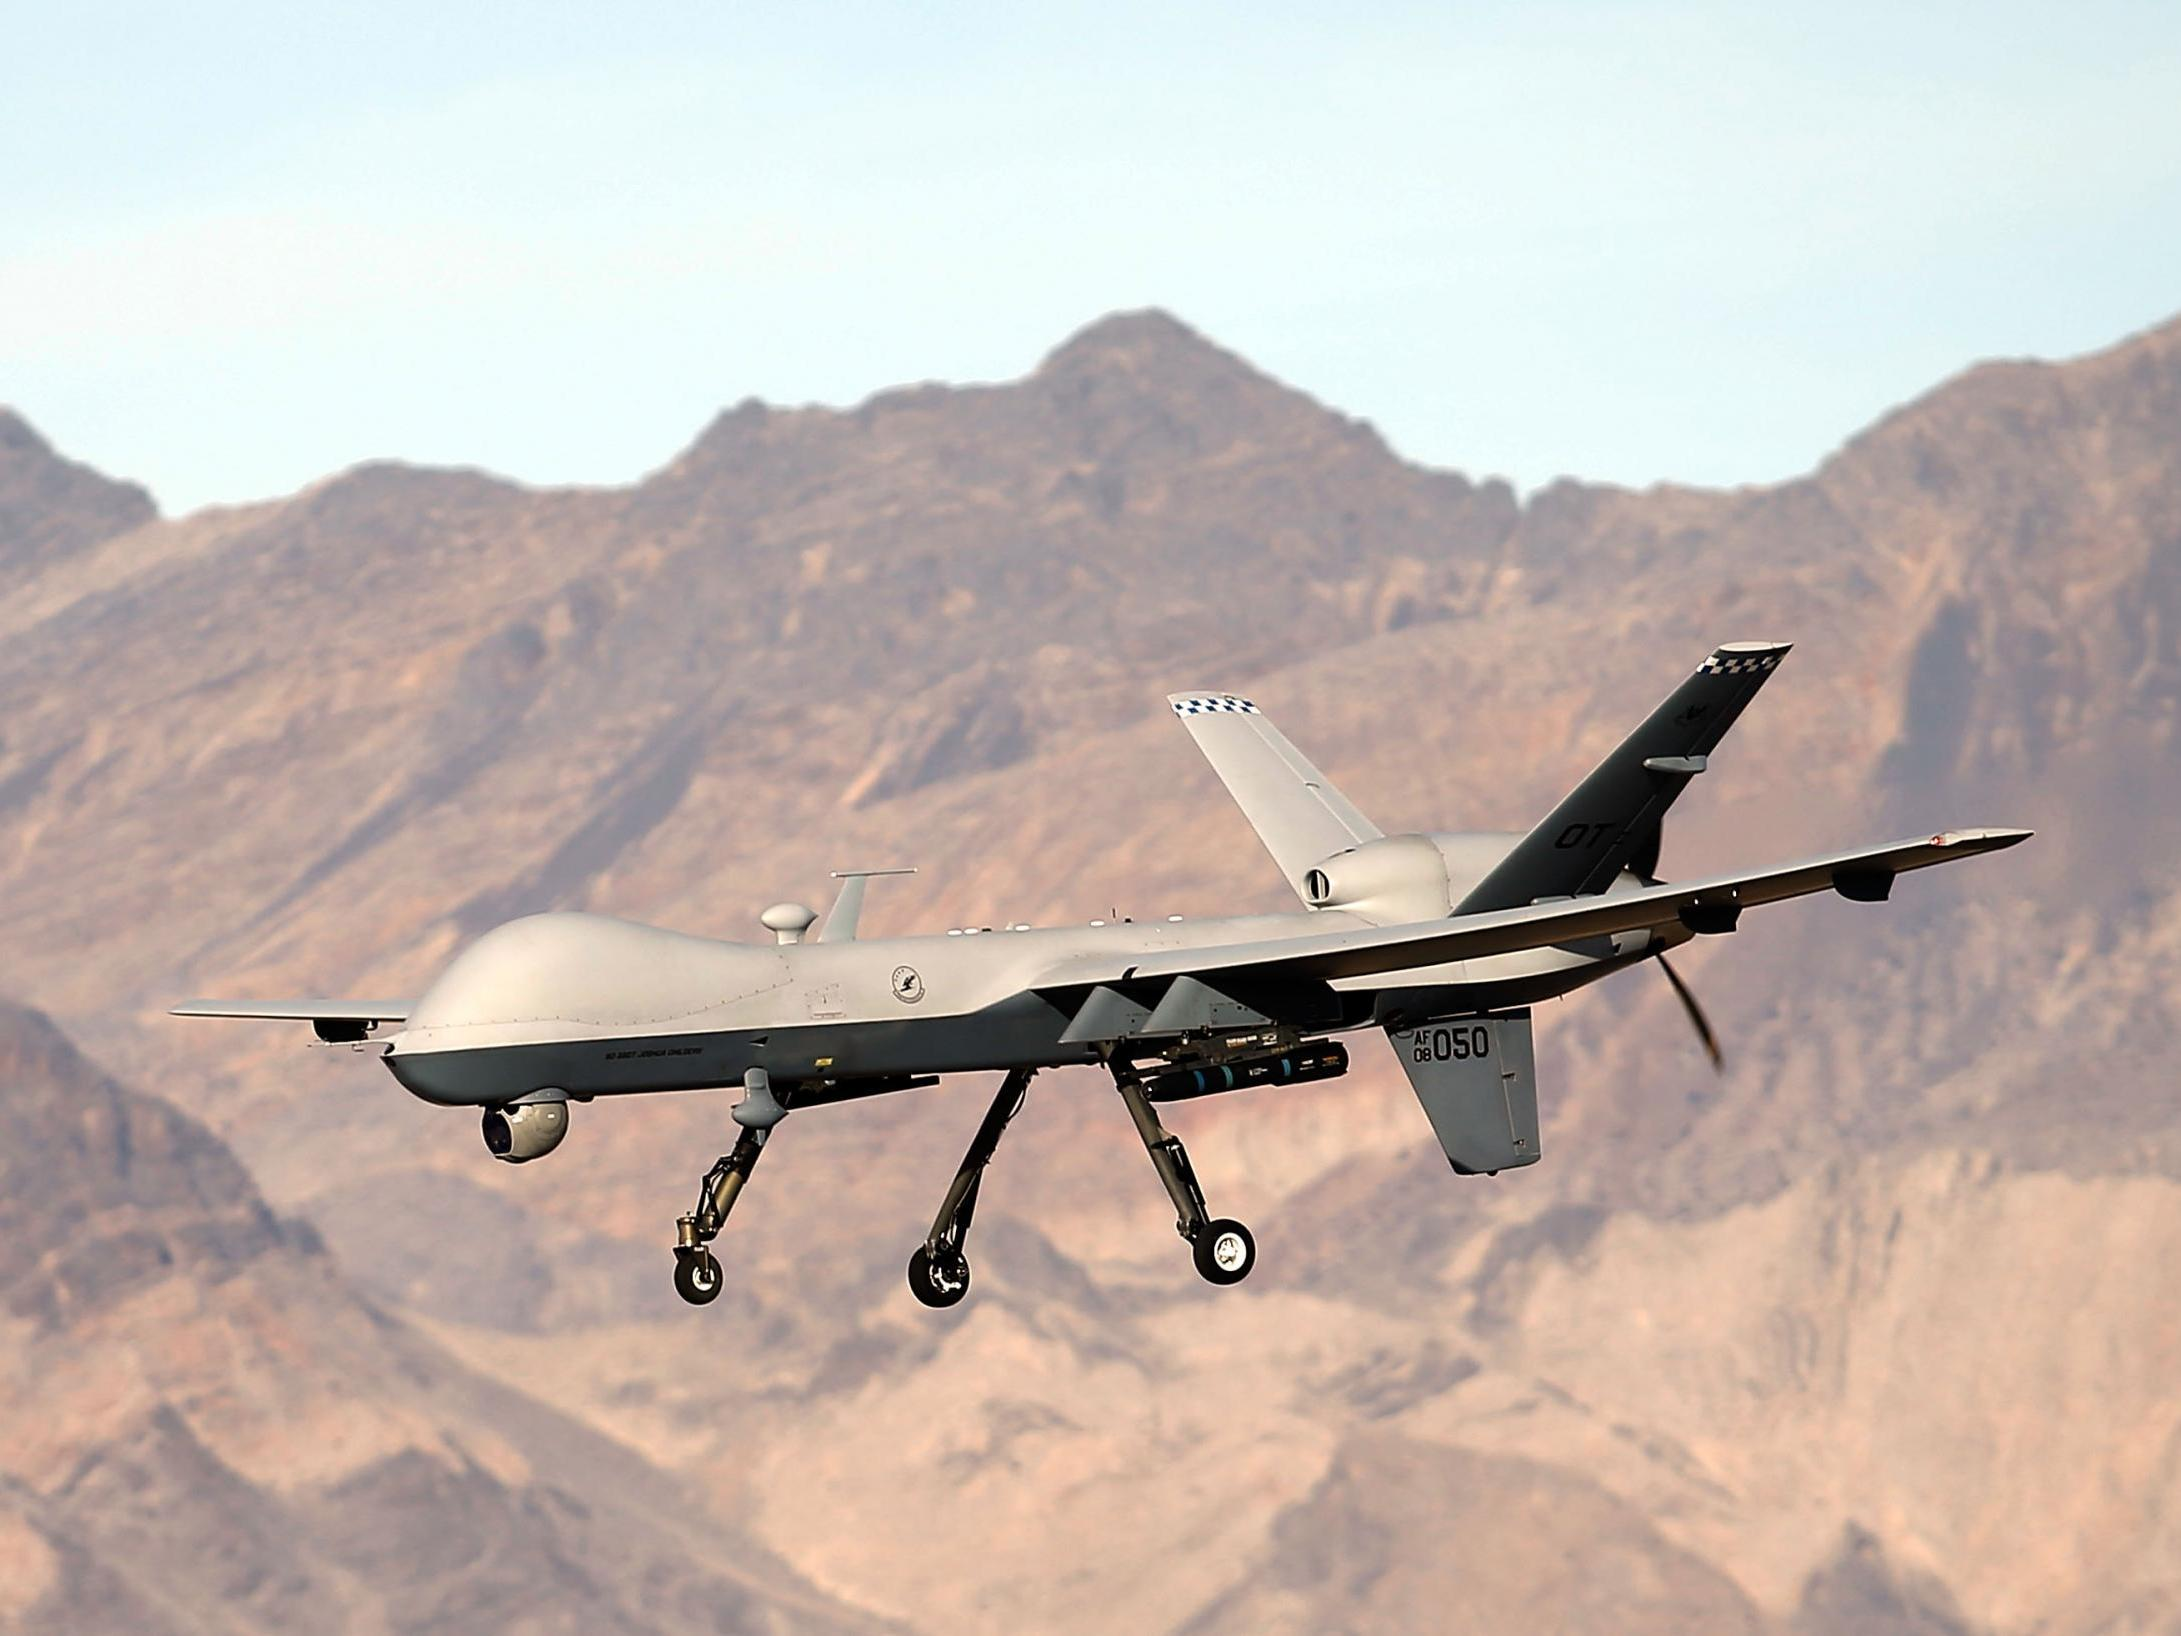 US military drone 'shot down by Russian forces in Libya'